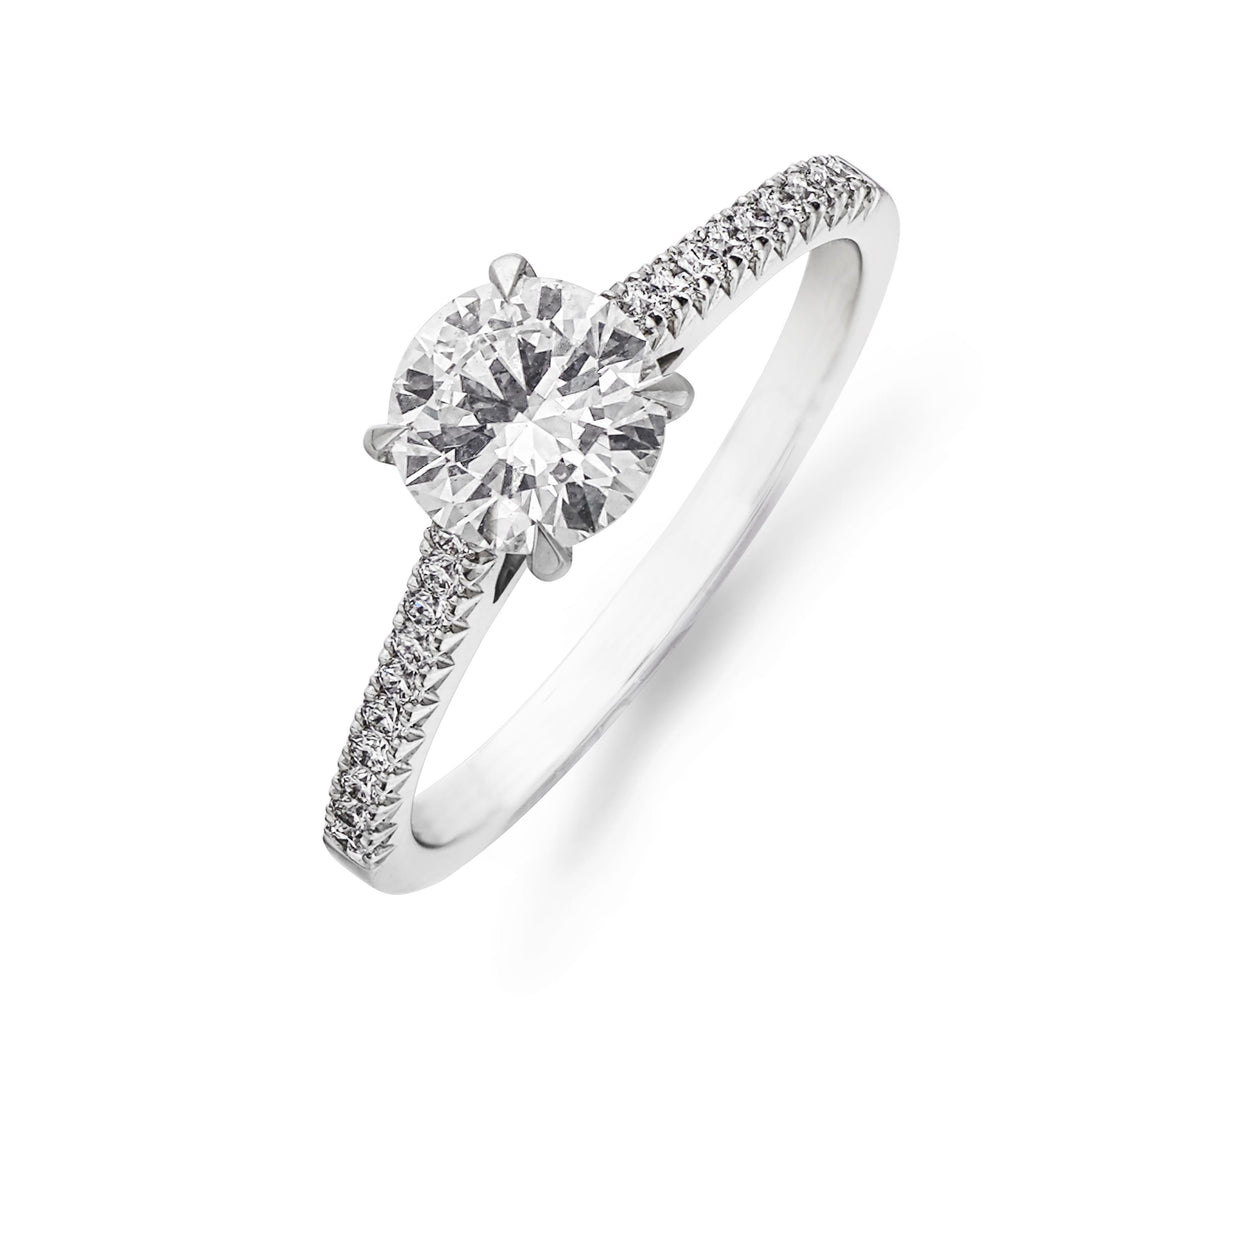 Brilliant-Cut Diamond Solitaire with French-Cut Diamond Shoulders-Hamilton & Inches